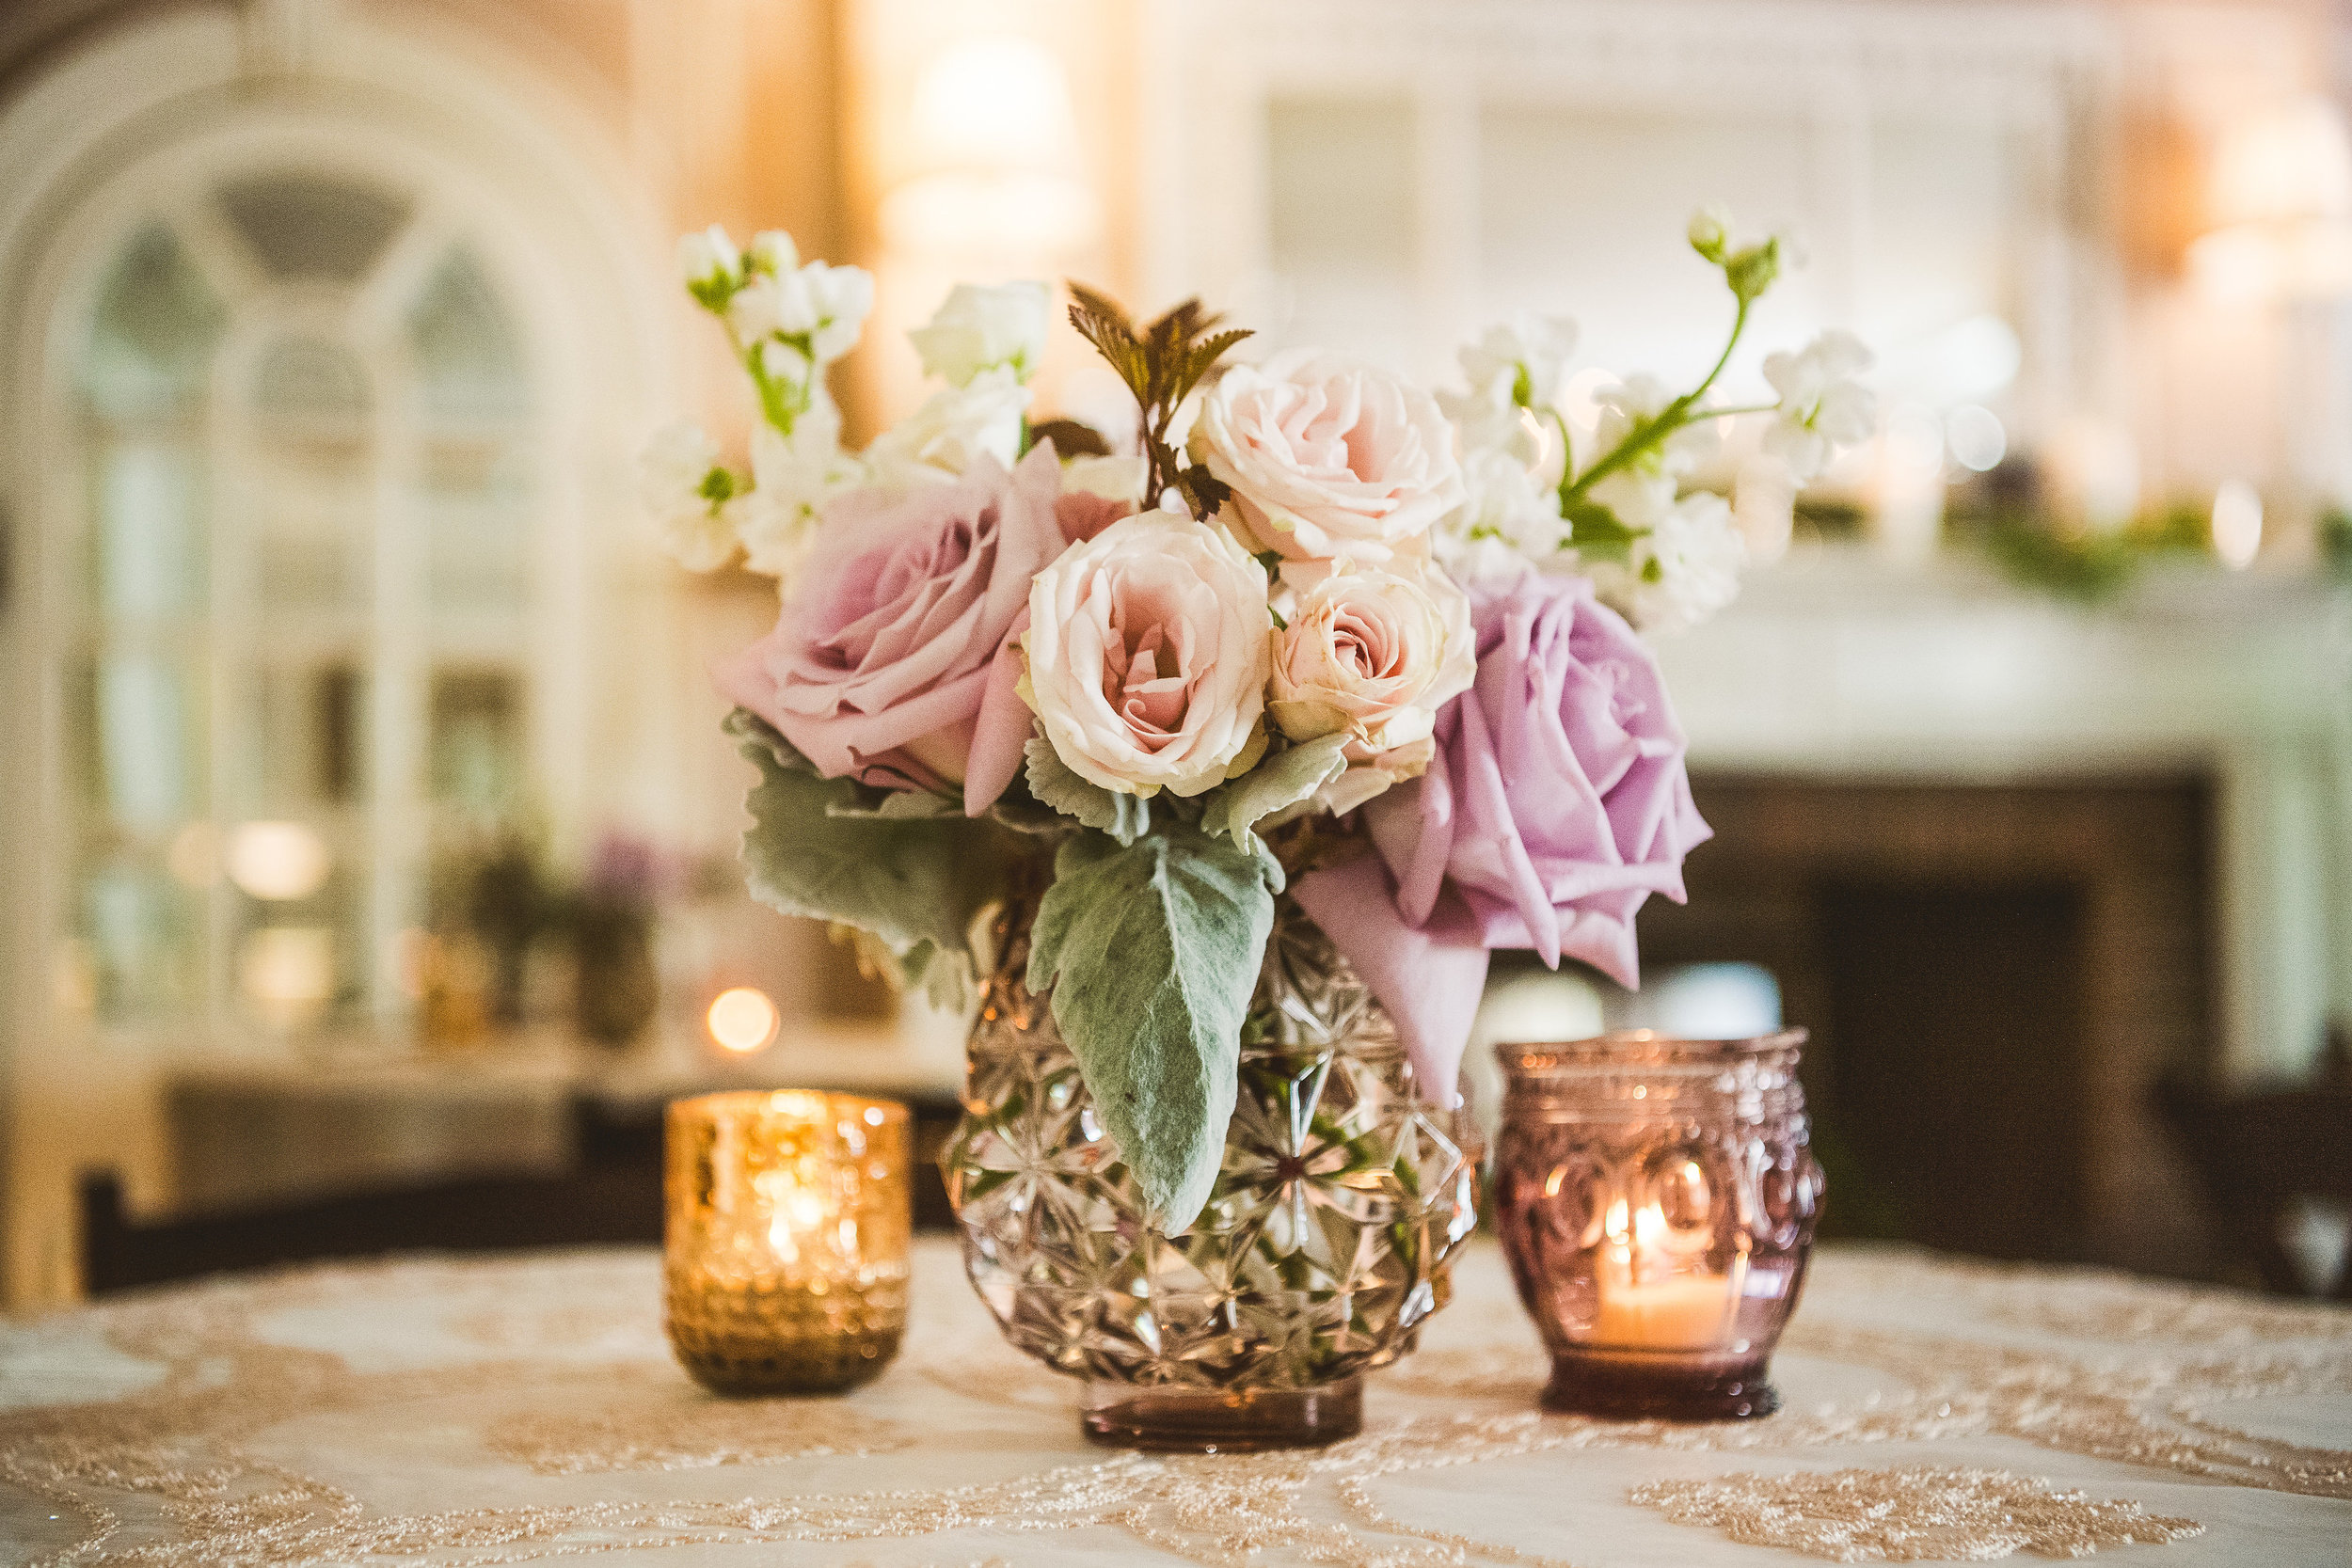 PA Wedding, Sage Farm House, Rectangle Table, Farm Table, Garland, Lavender Votives, Centerpiece, Nikki and Chip Photography